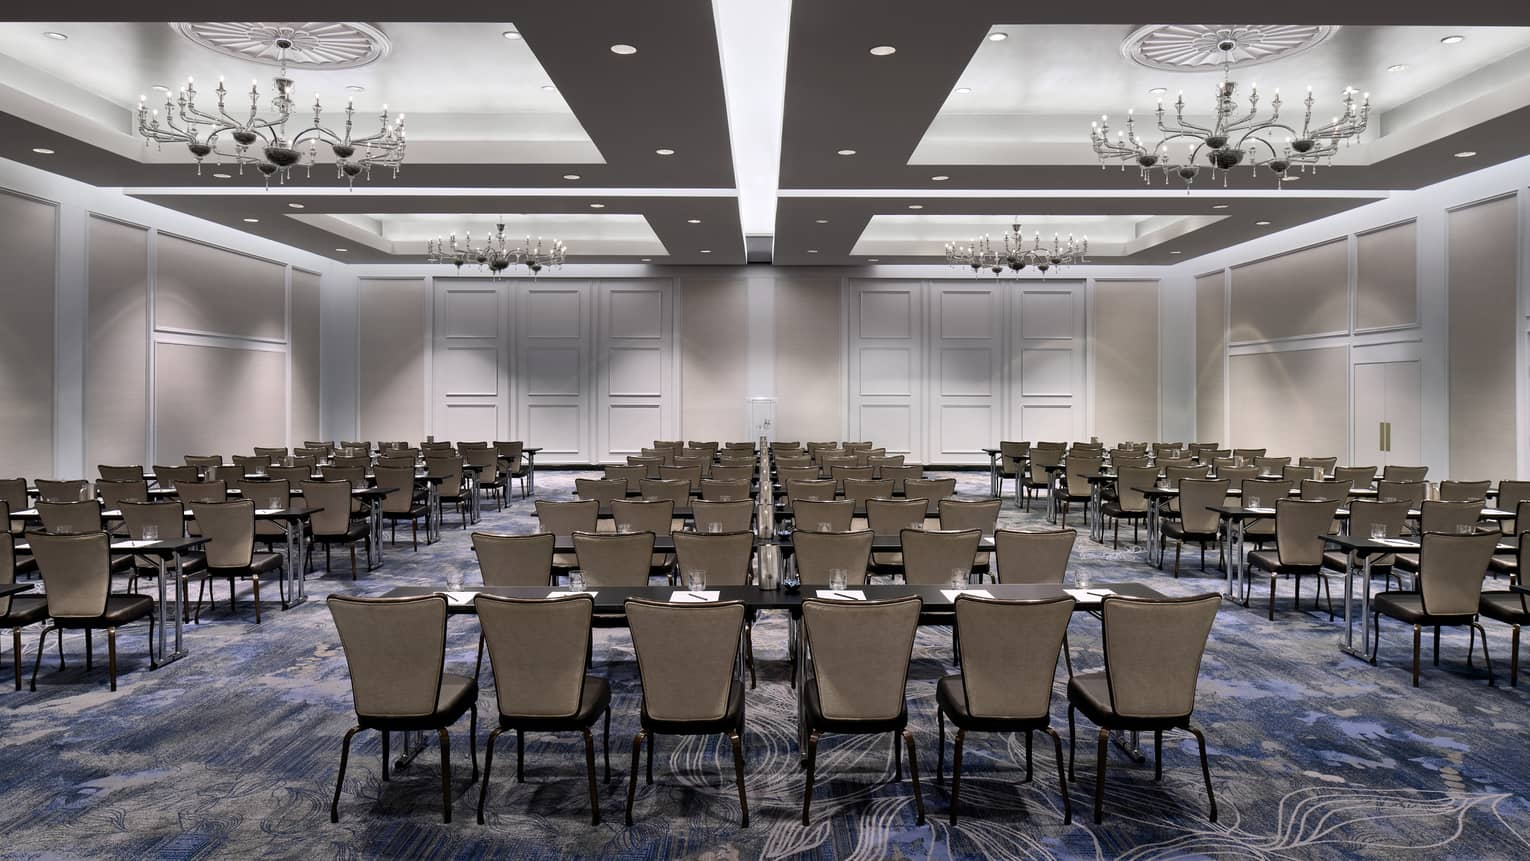 Large ballroom with inset ceilings, recessed lighting, and chandeliers, with several rows of tables and chairs